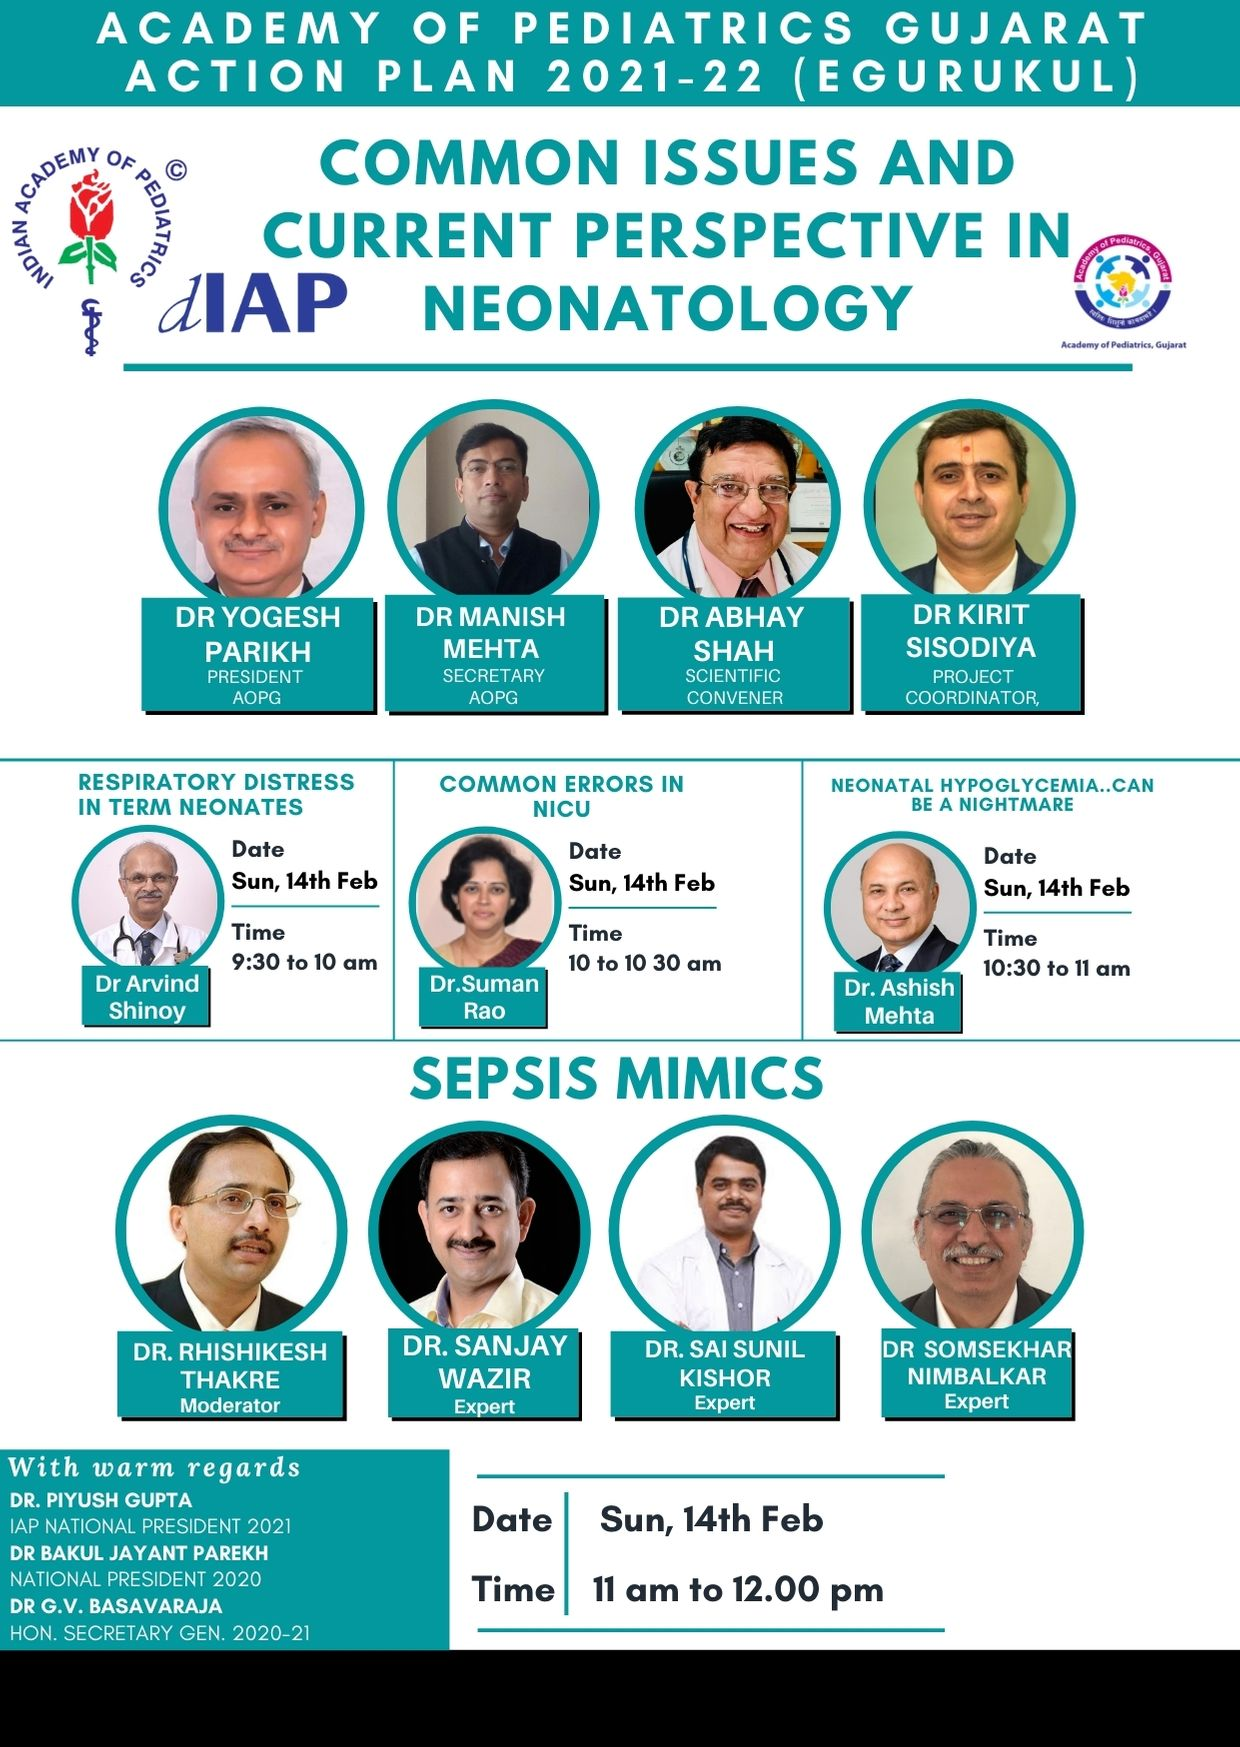 Copy-of-9am-14th-Feb-Academy-Of-Pediatrics-Gujarat-Action-Plan-2021-22-eGURUKUL_-Common-issues-and-current-perspective-in-Neonatology